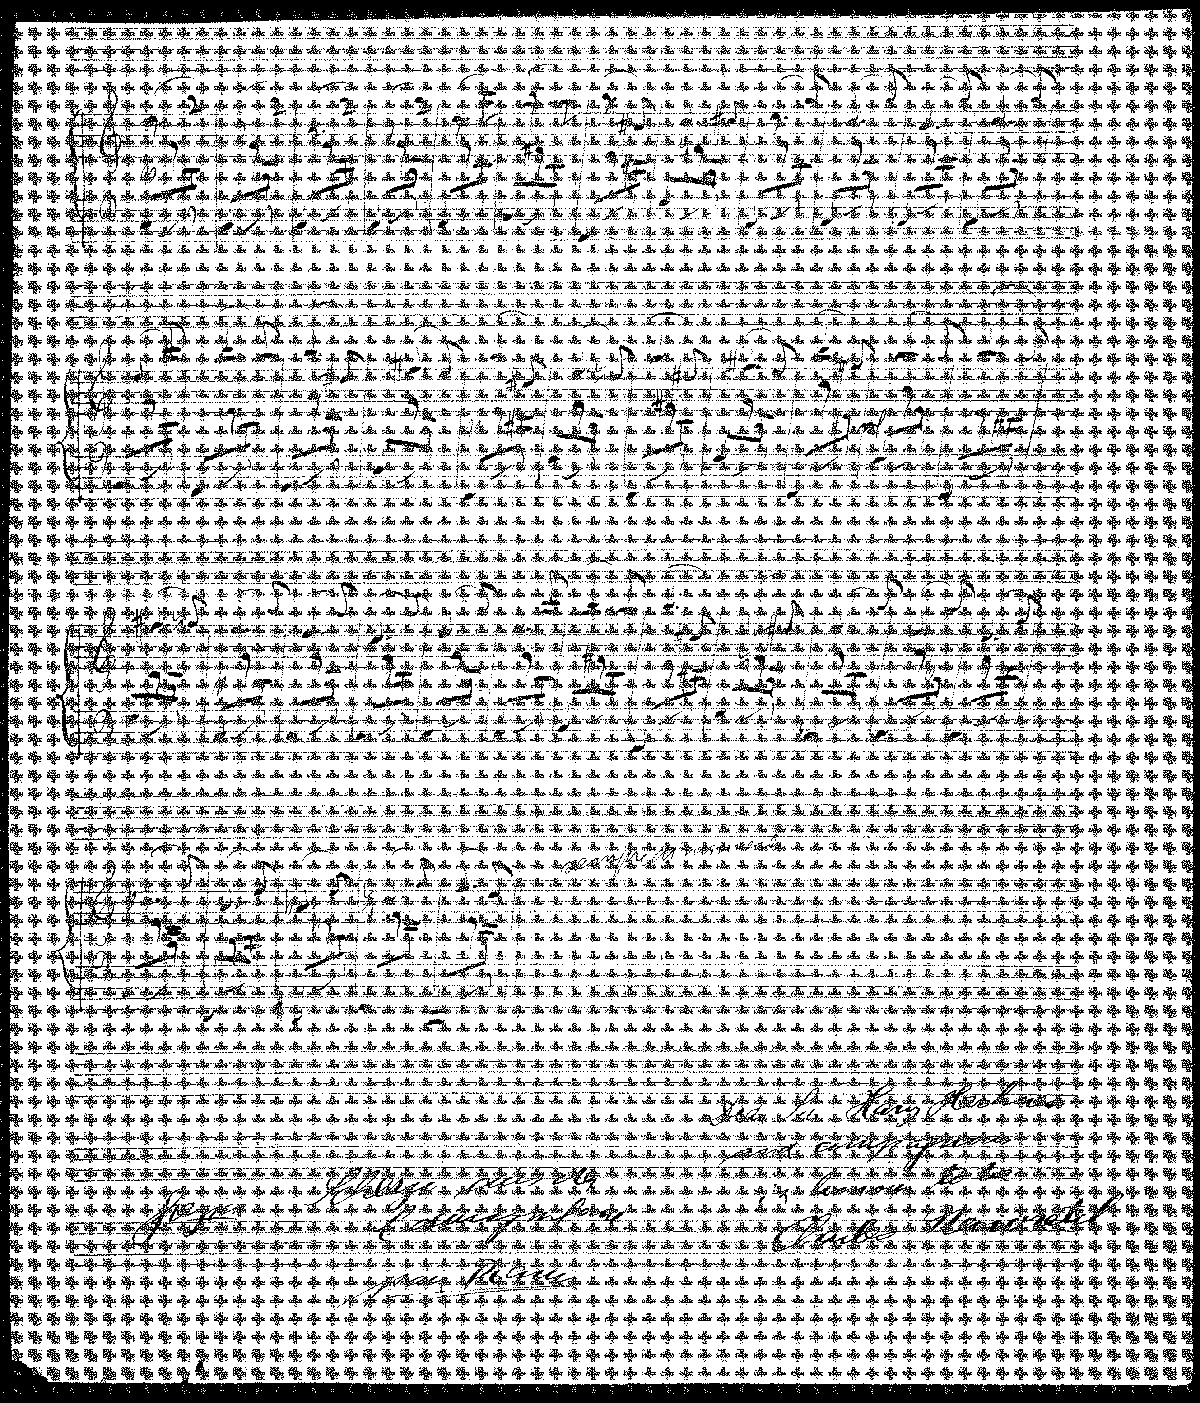 PMLP544703-KNavrátil Symphony in C major Scherzo arrpiano ms.pdf